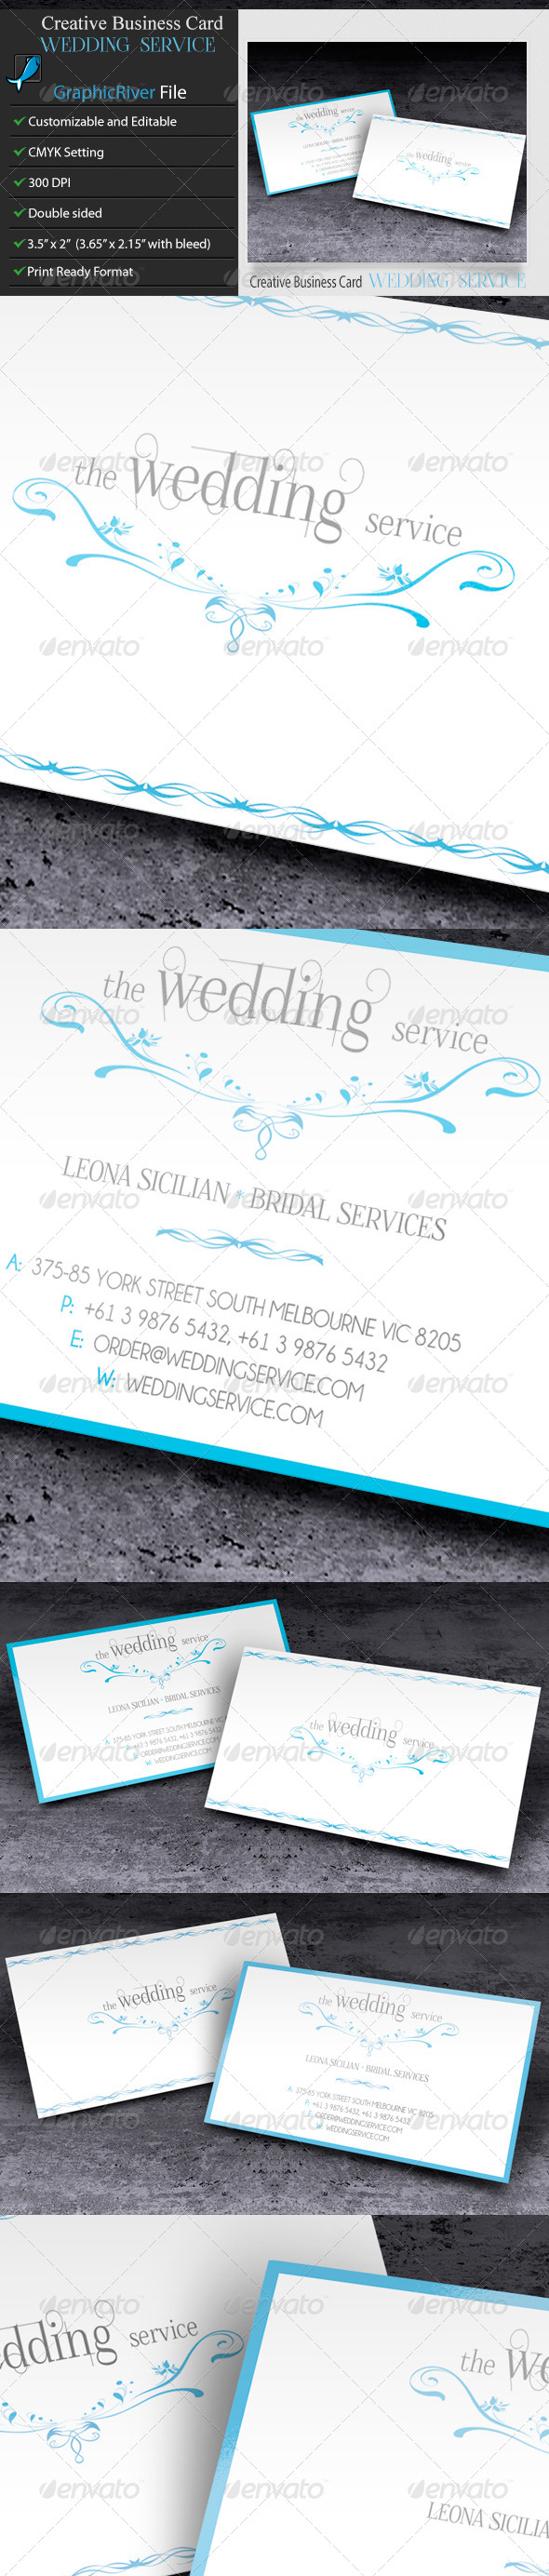 GraphicRiver Creative Business Card WeddingService 6337935